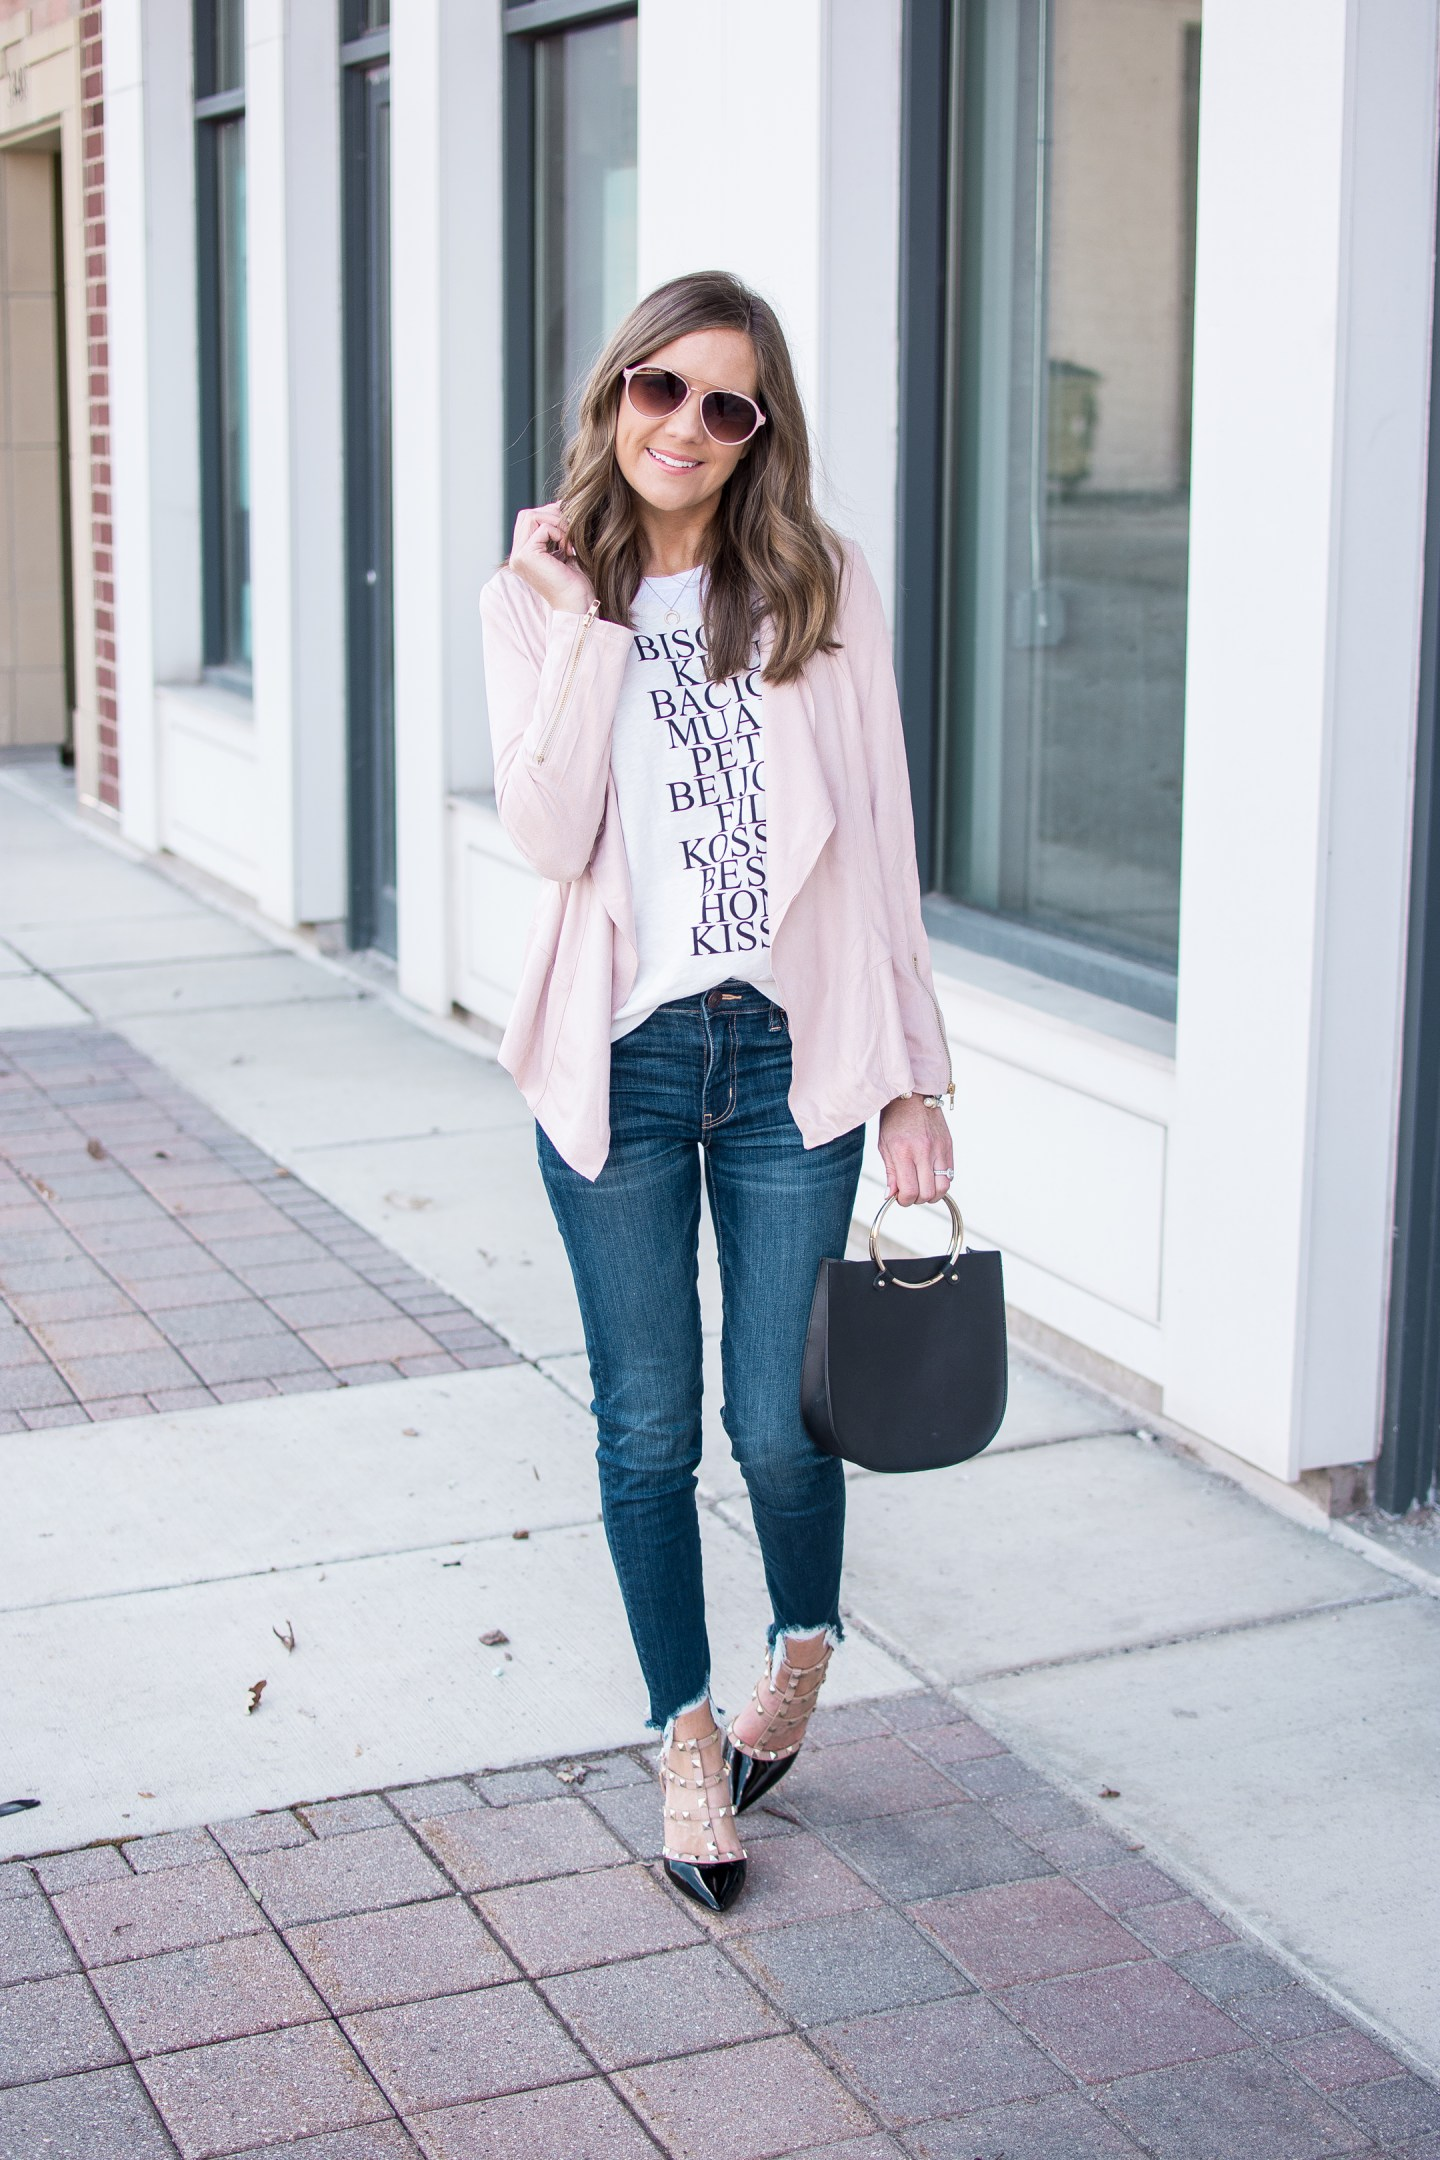 2 ways to style a graphic tee, utility jacket white sneakers, studded pumps